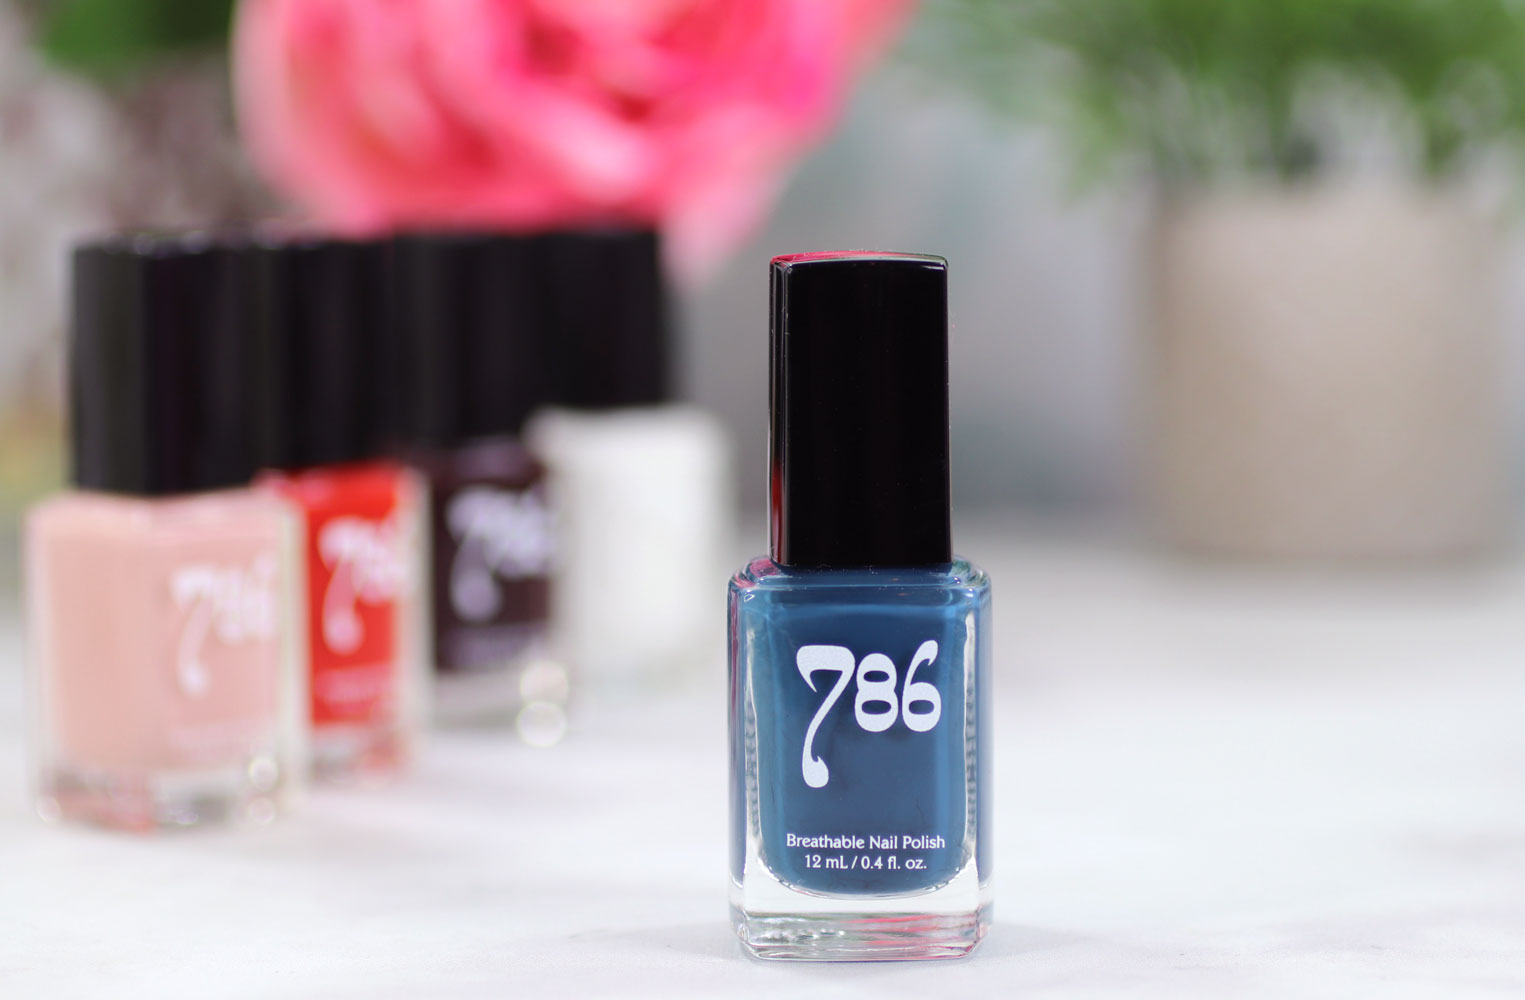 786 Cosmetics Breathable Cruelty Free and Vegan Nail Polish Review and Swatches - Chefchaouen